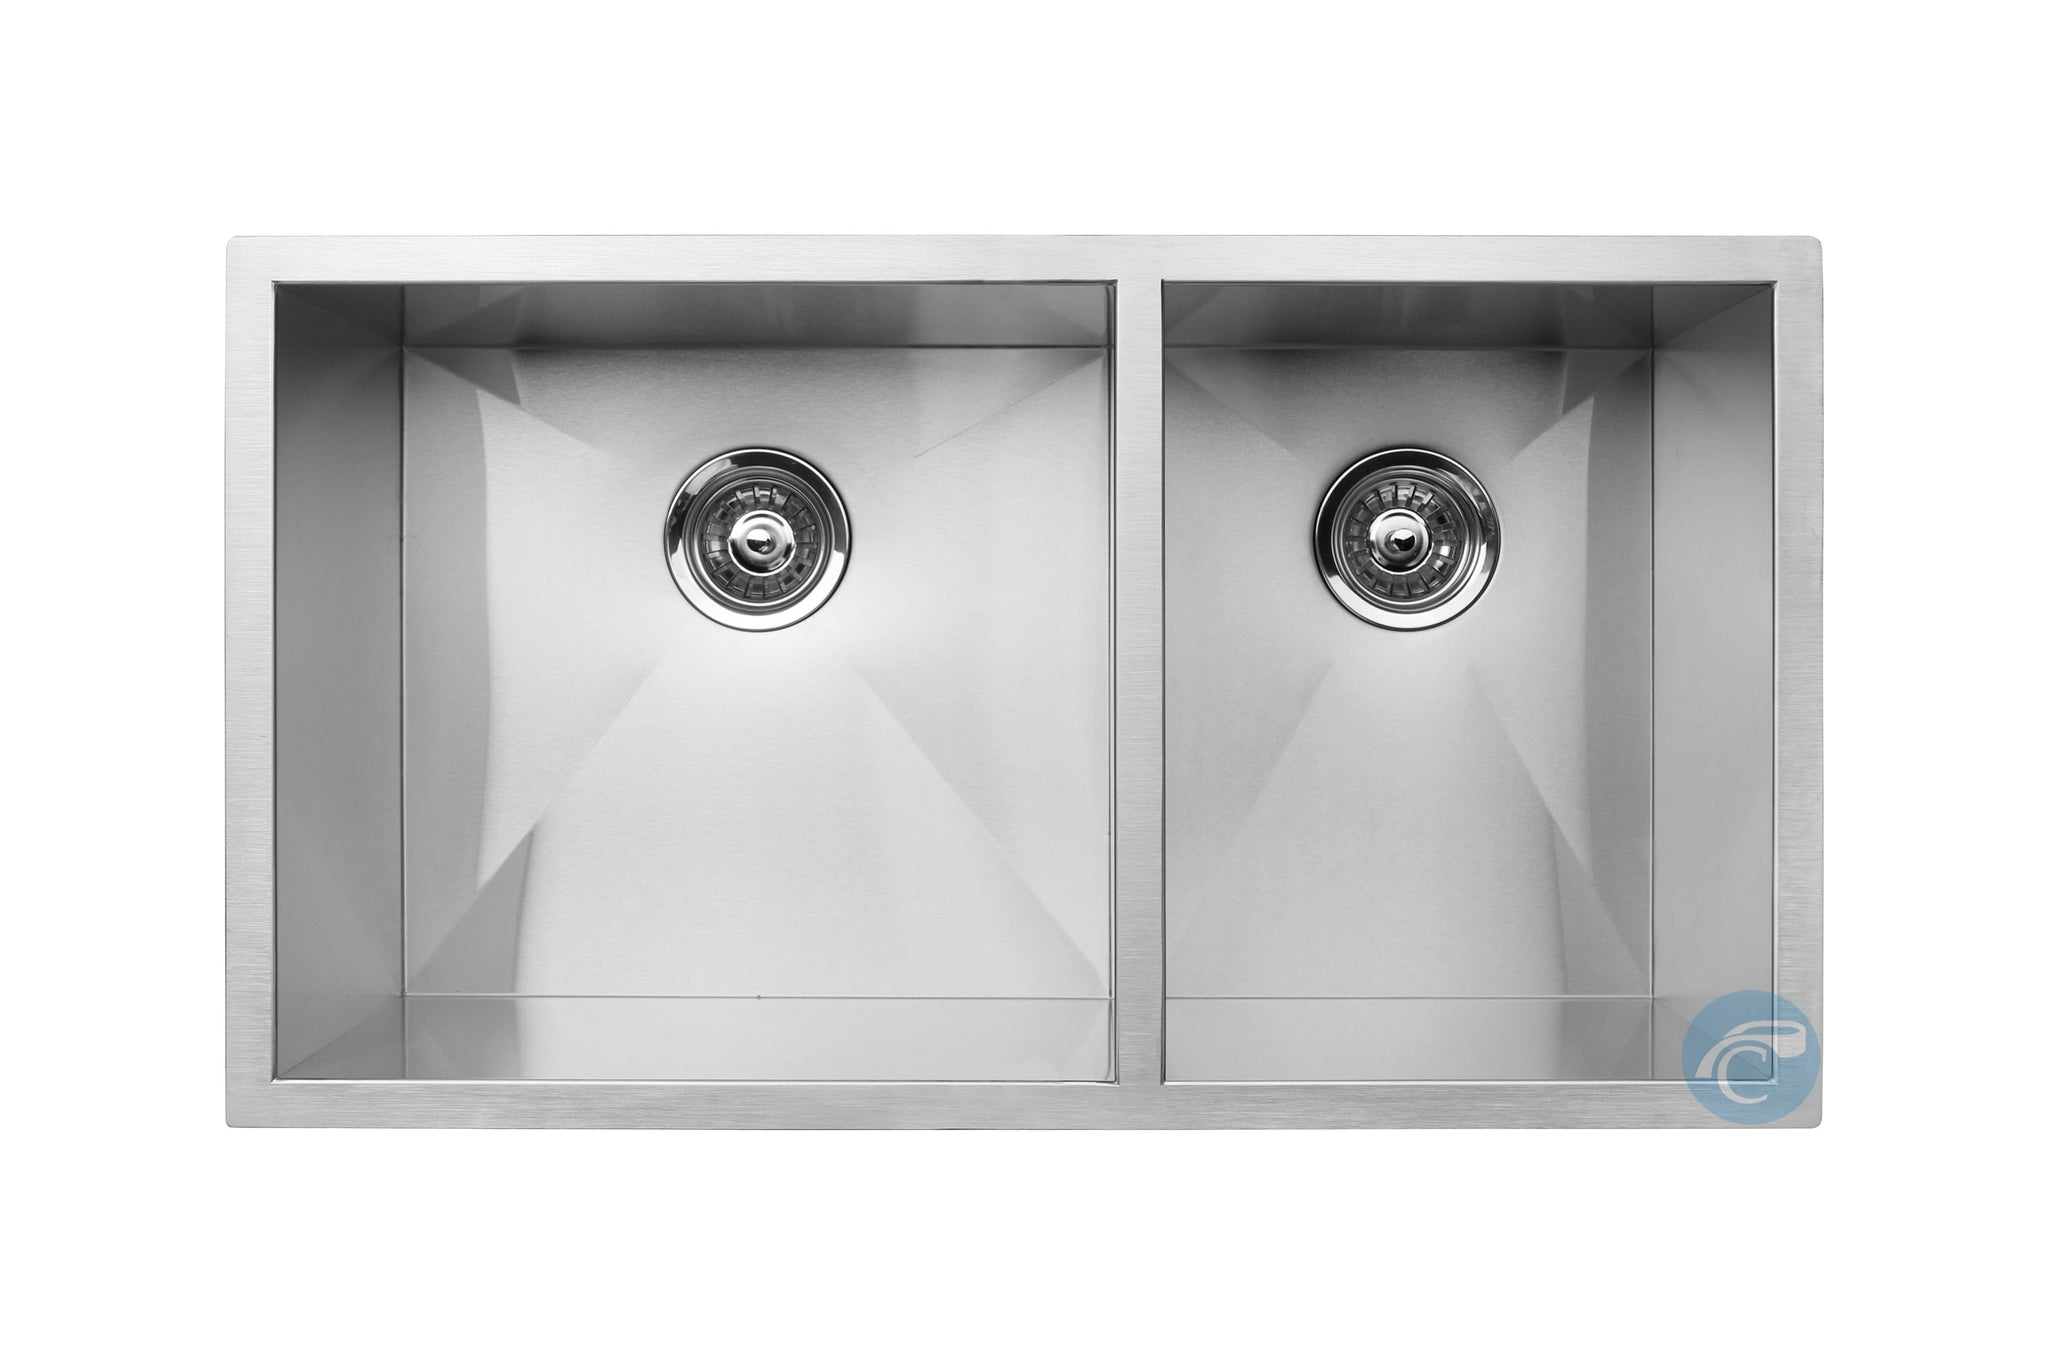 Master Chef Orleans 6040 Stainless Steel Double Bowl Culinary Sink